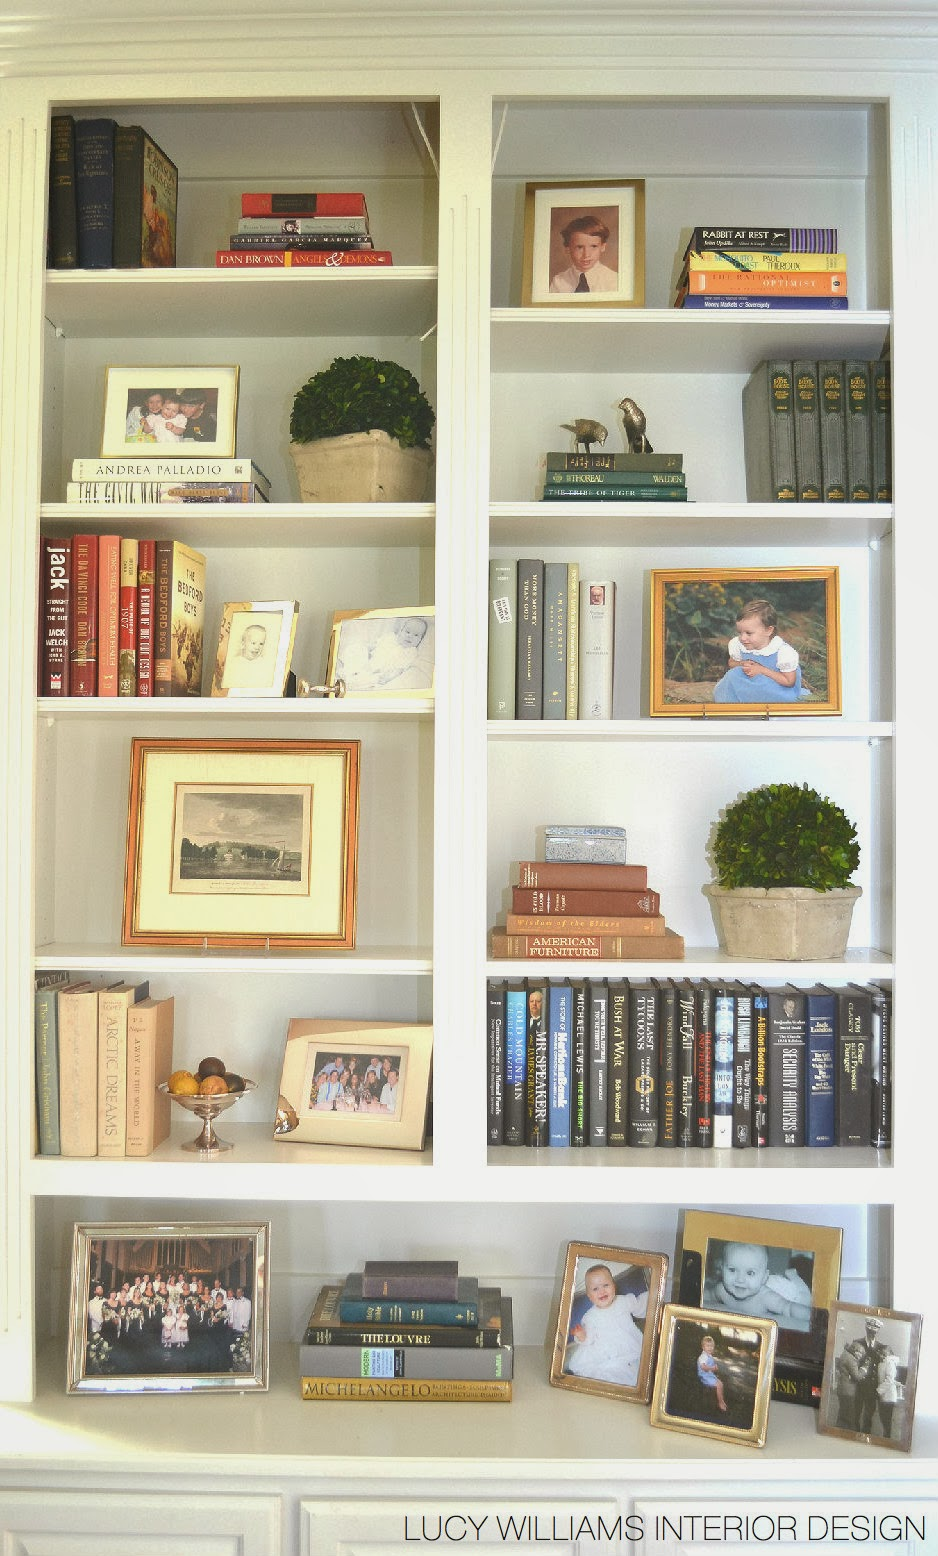 lucy williams interior design blog before and after On living room bookshelf